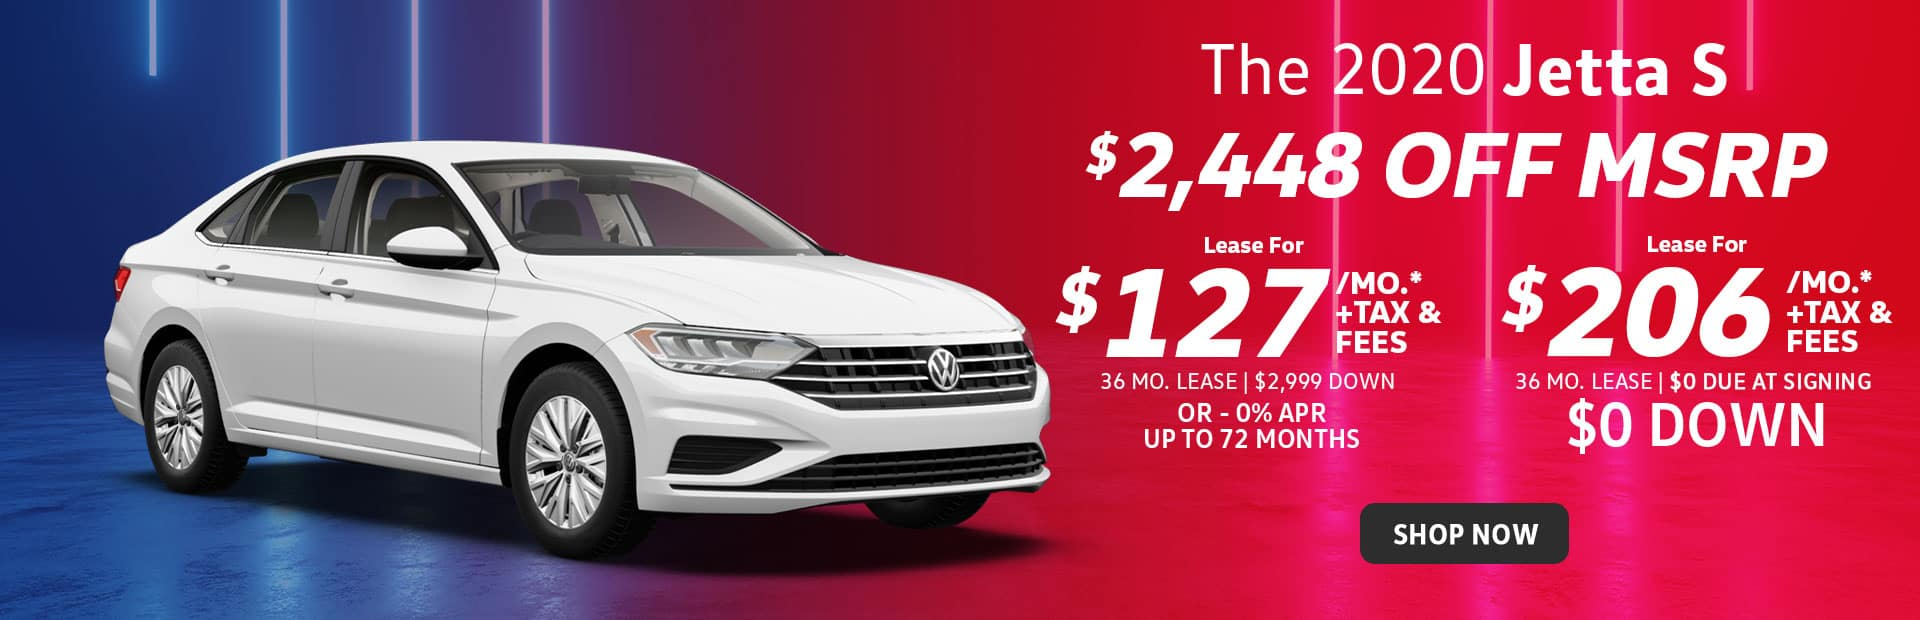 new jetta s lease special